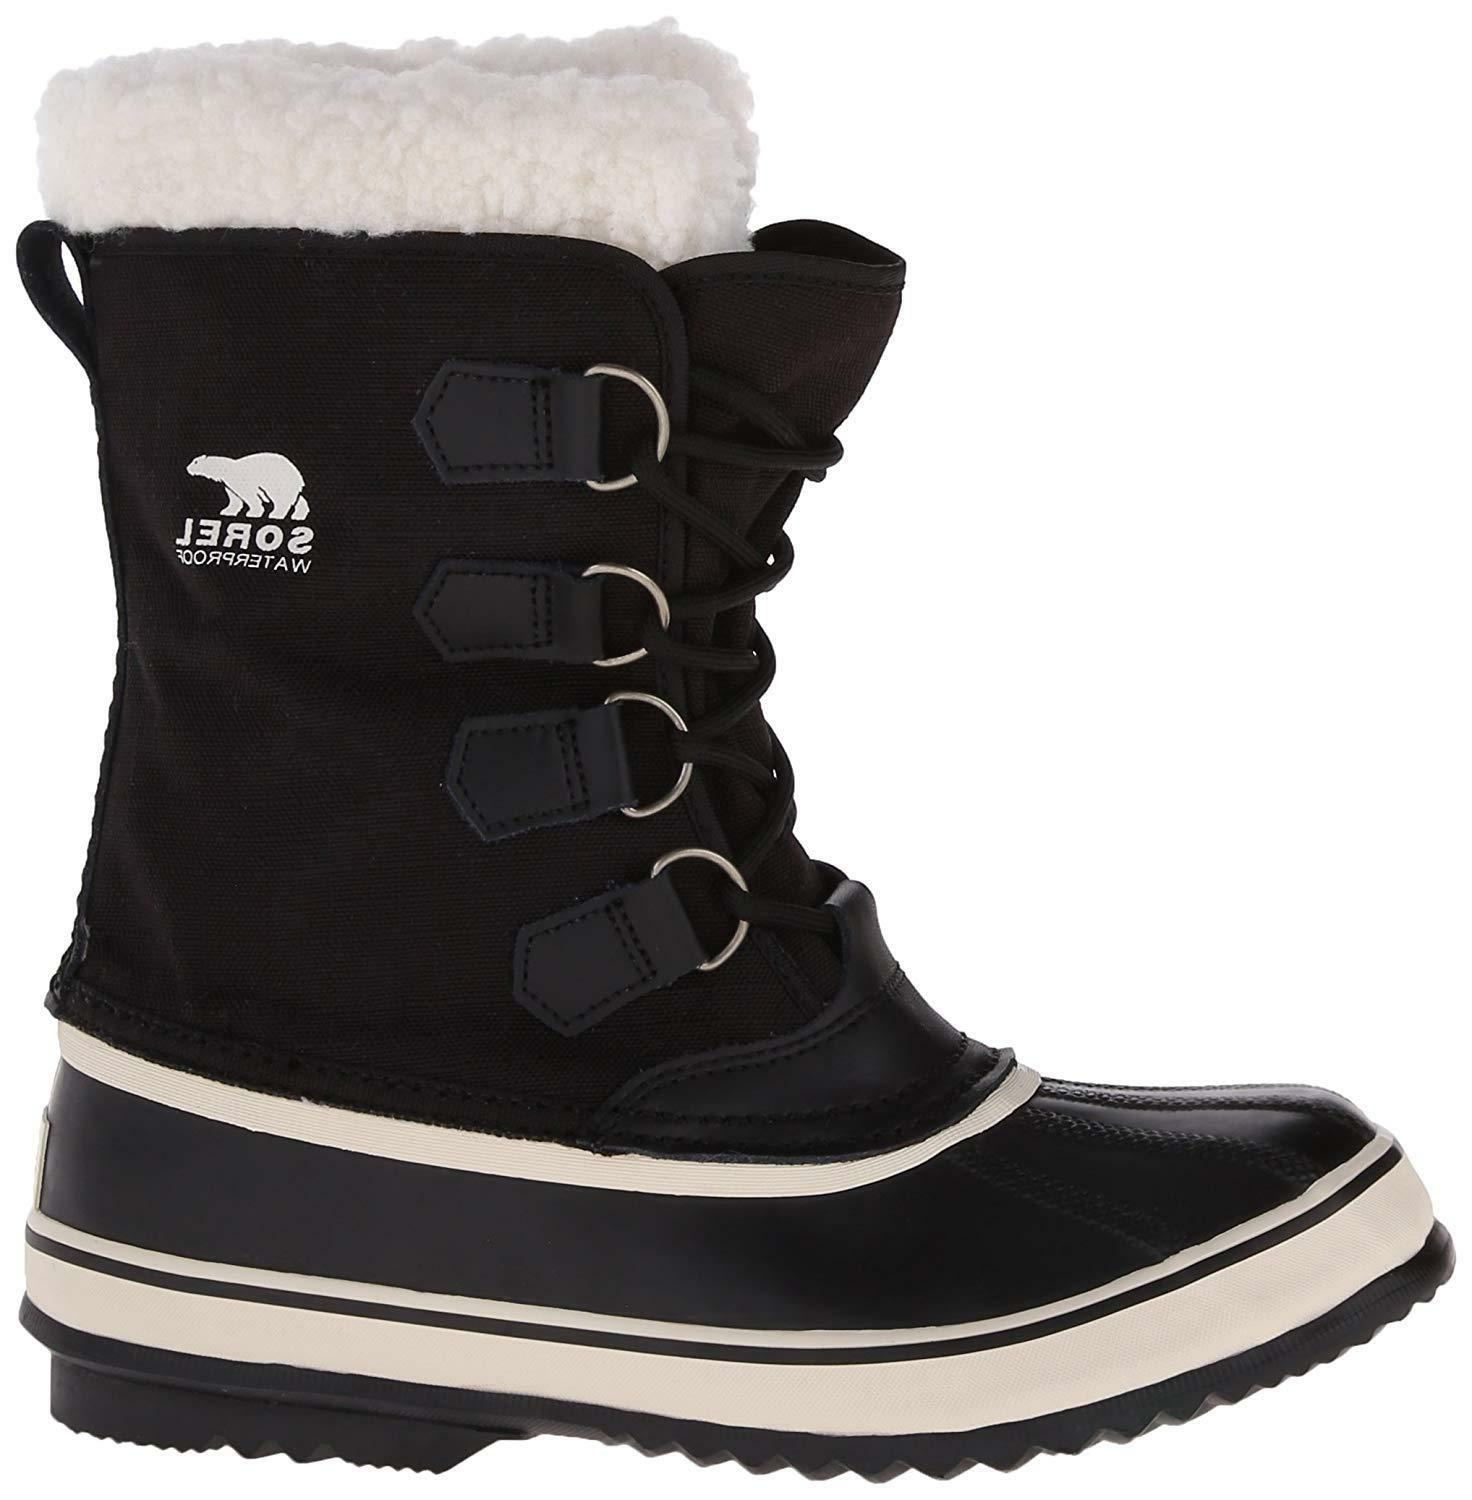 Sorel Winter Snow